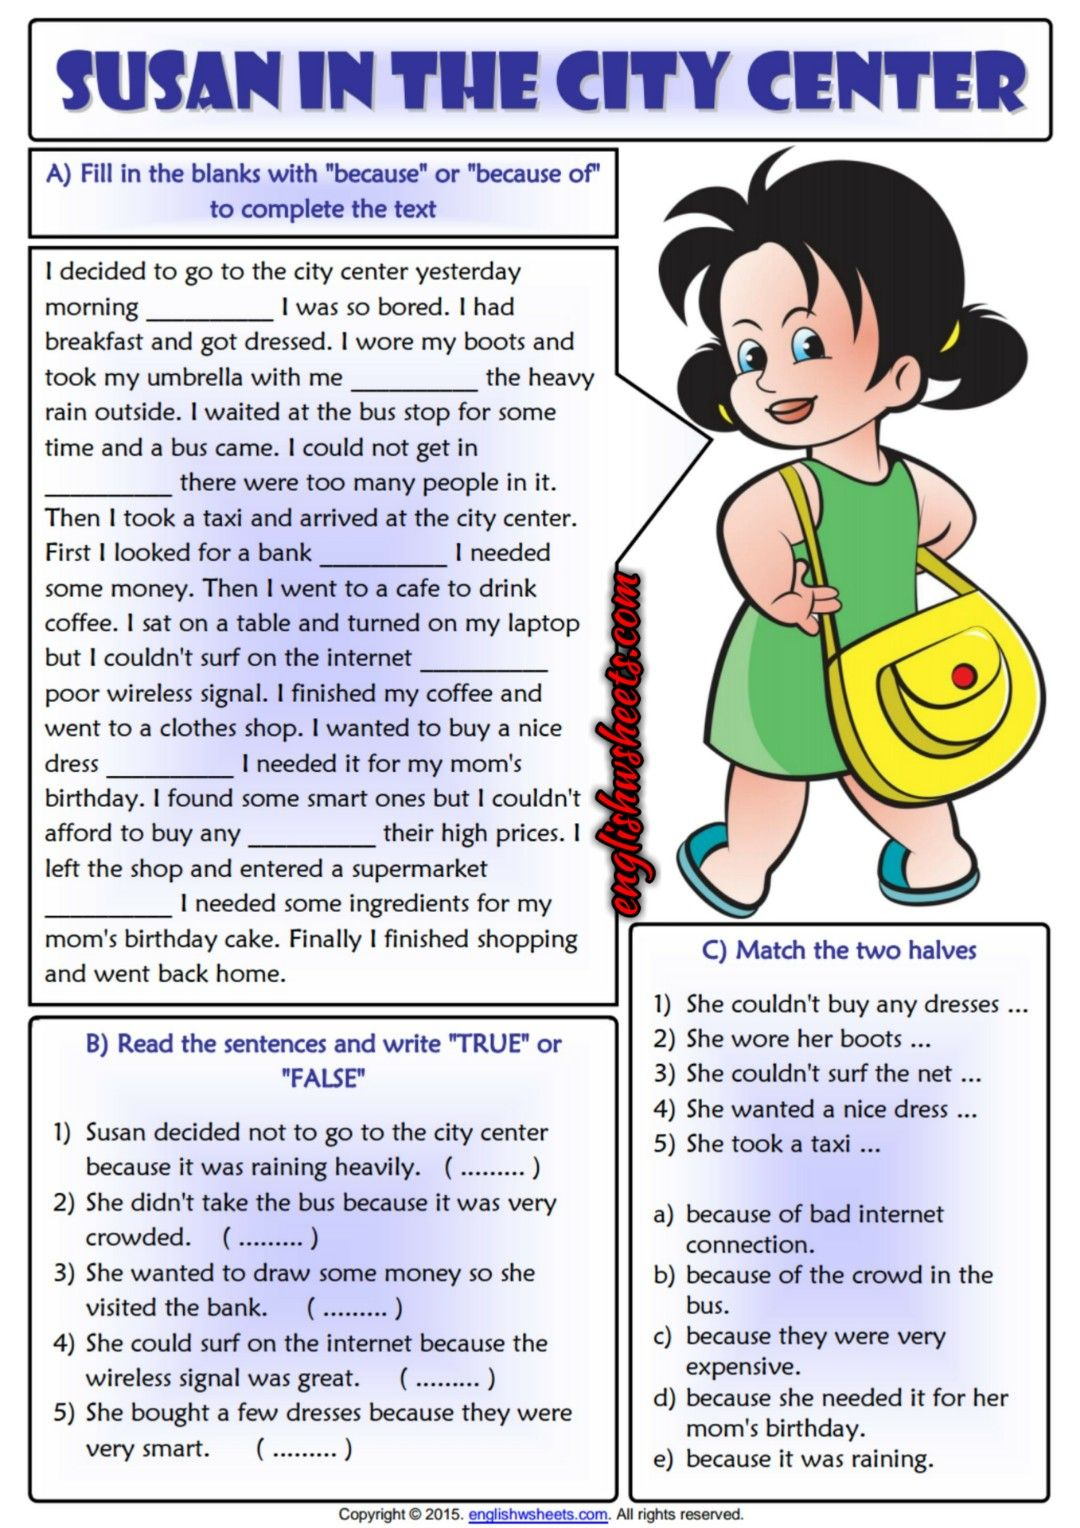 because or because of reading text exercises worksheet esl